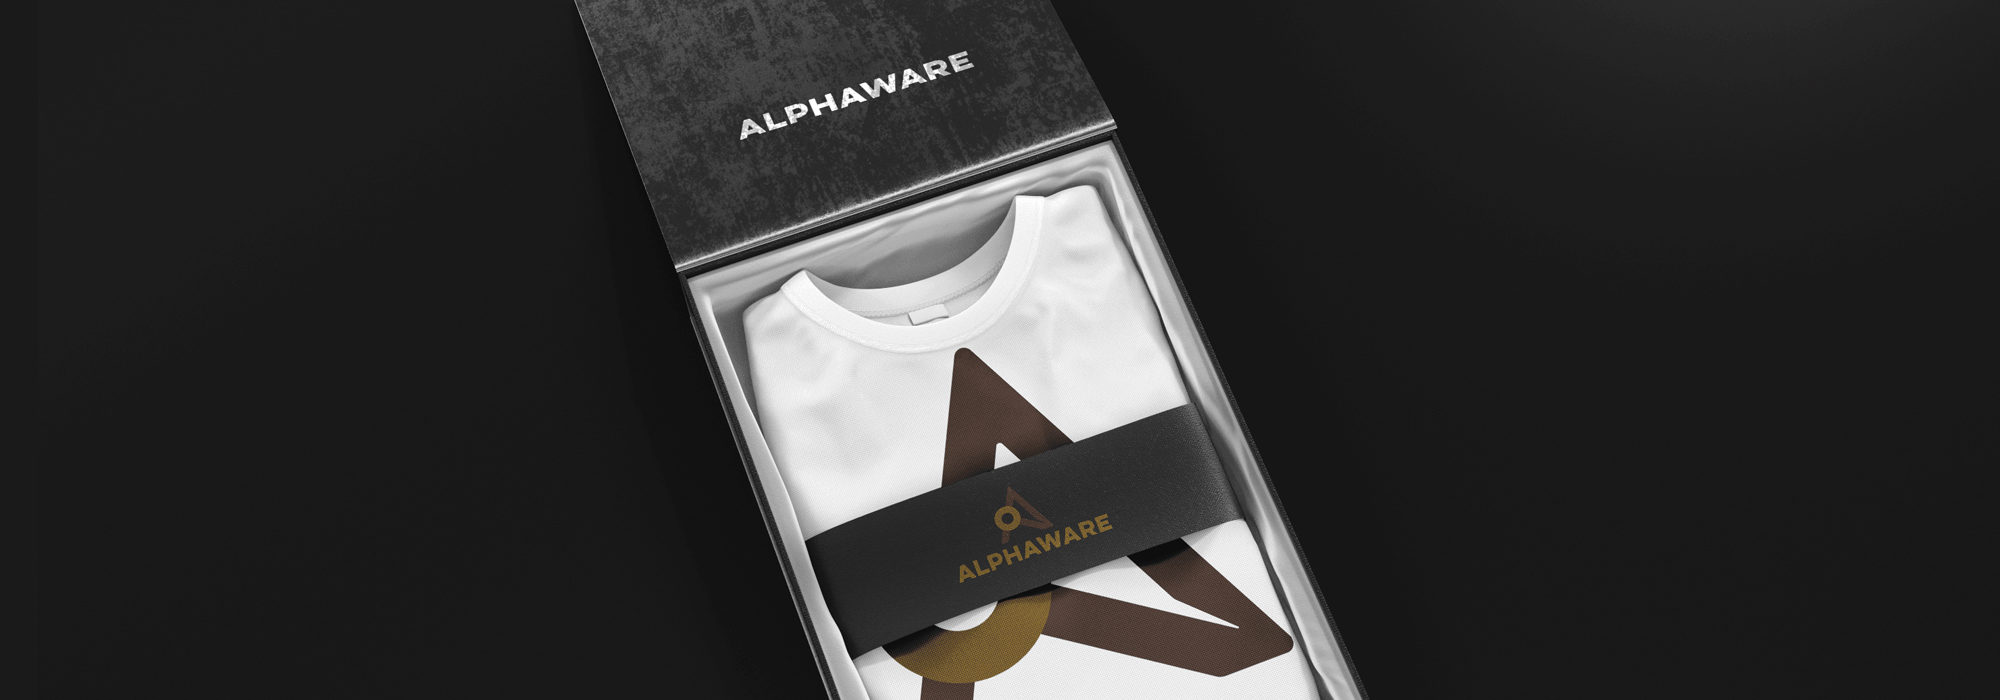 Alphaware Fashion Branding and Graphic Design